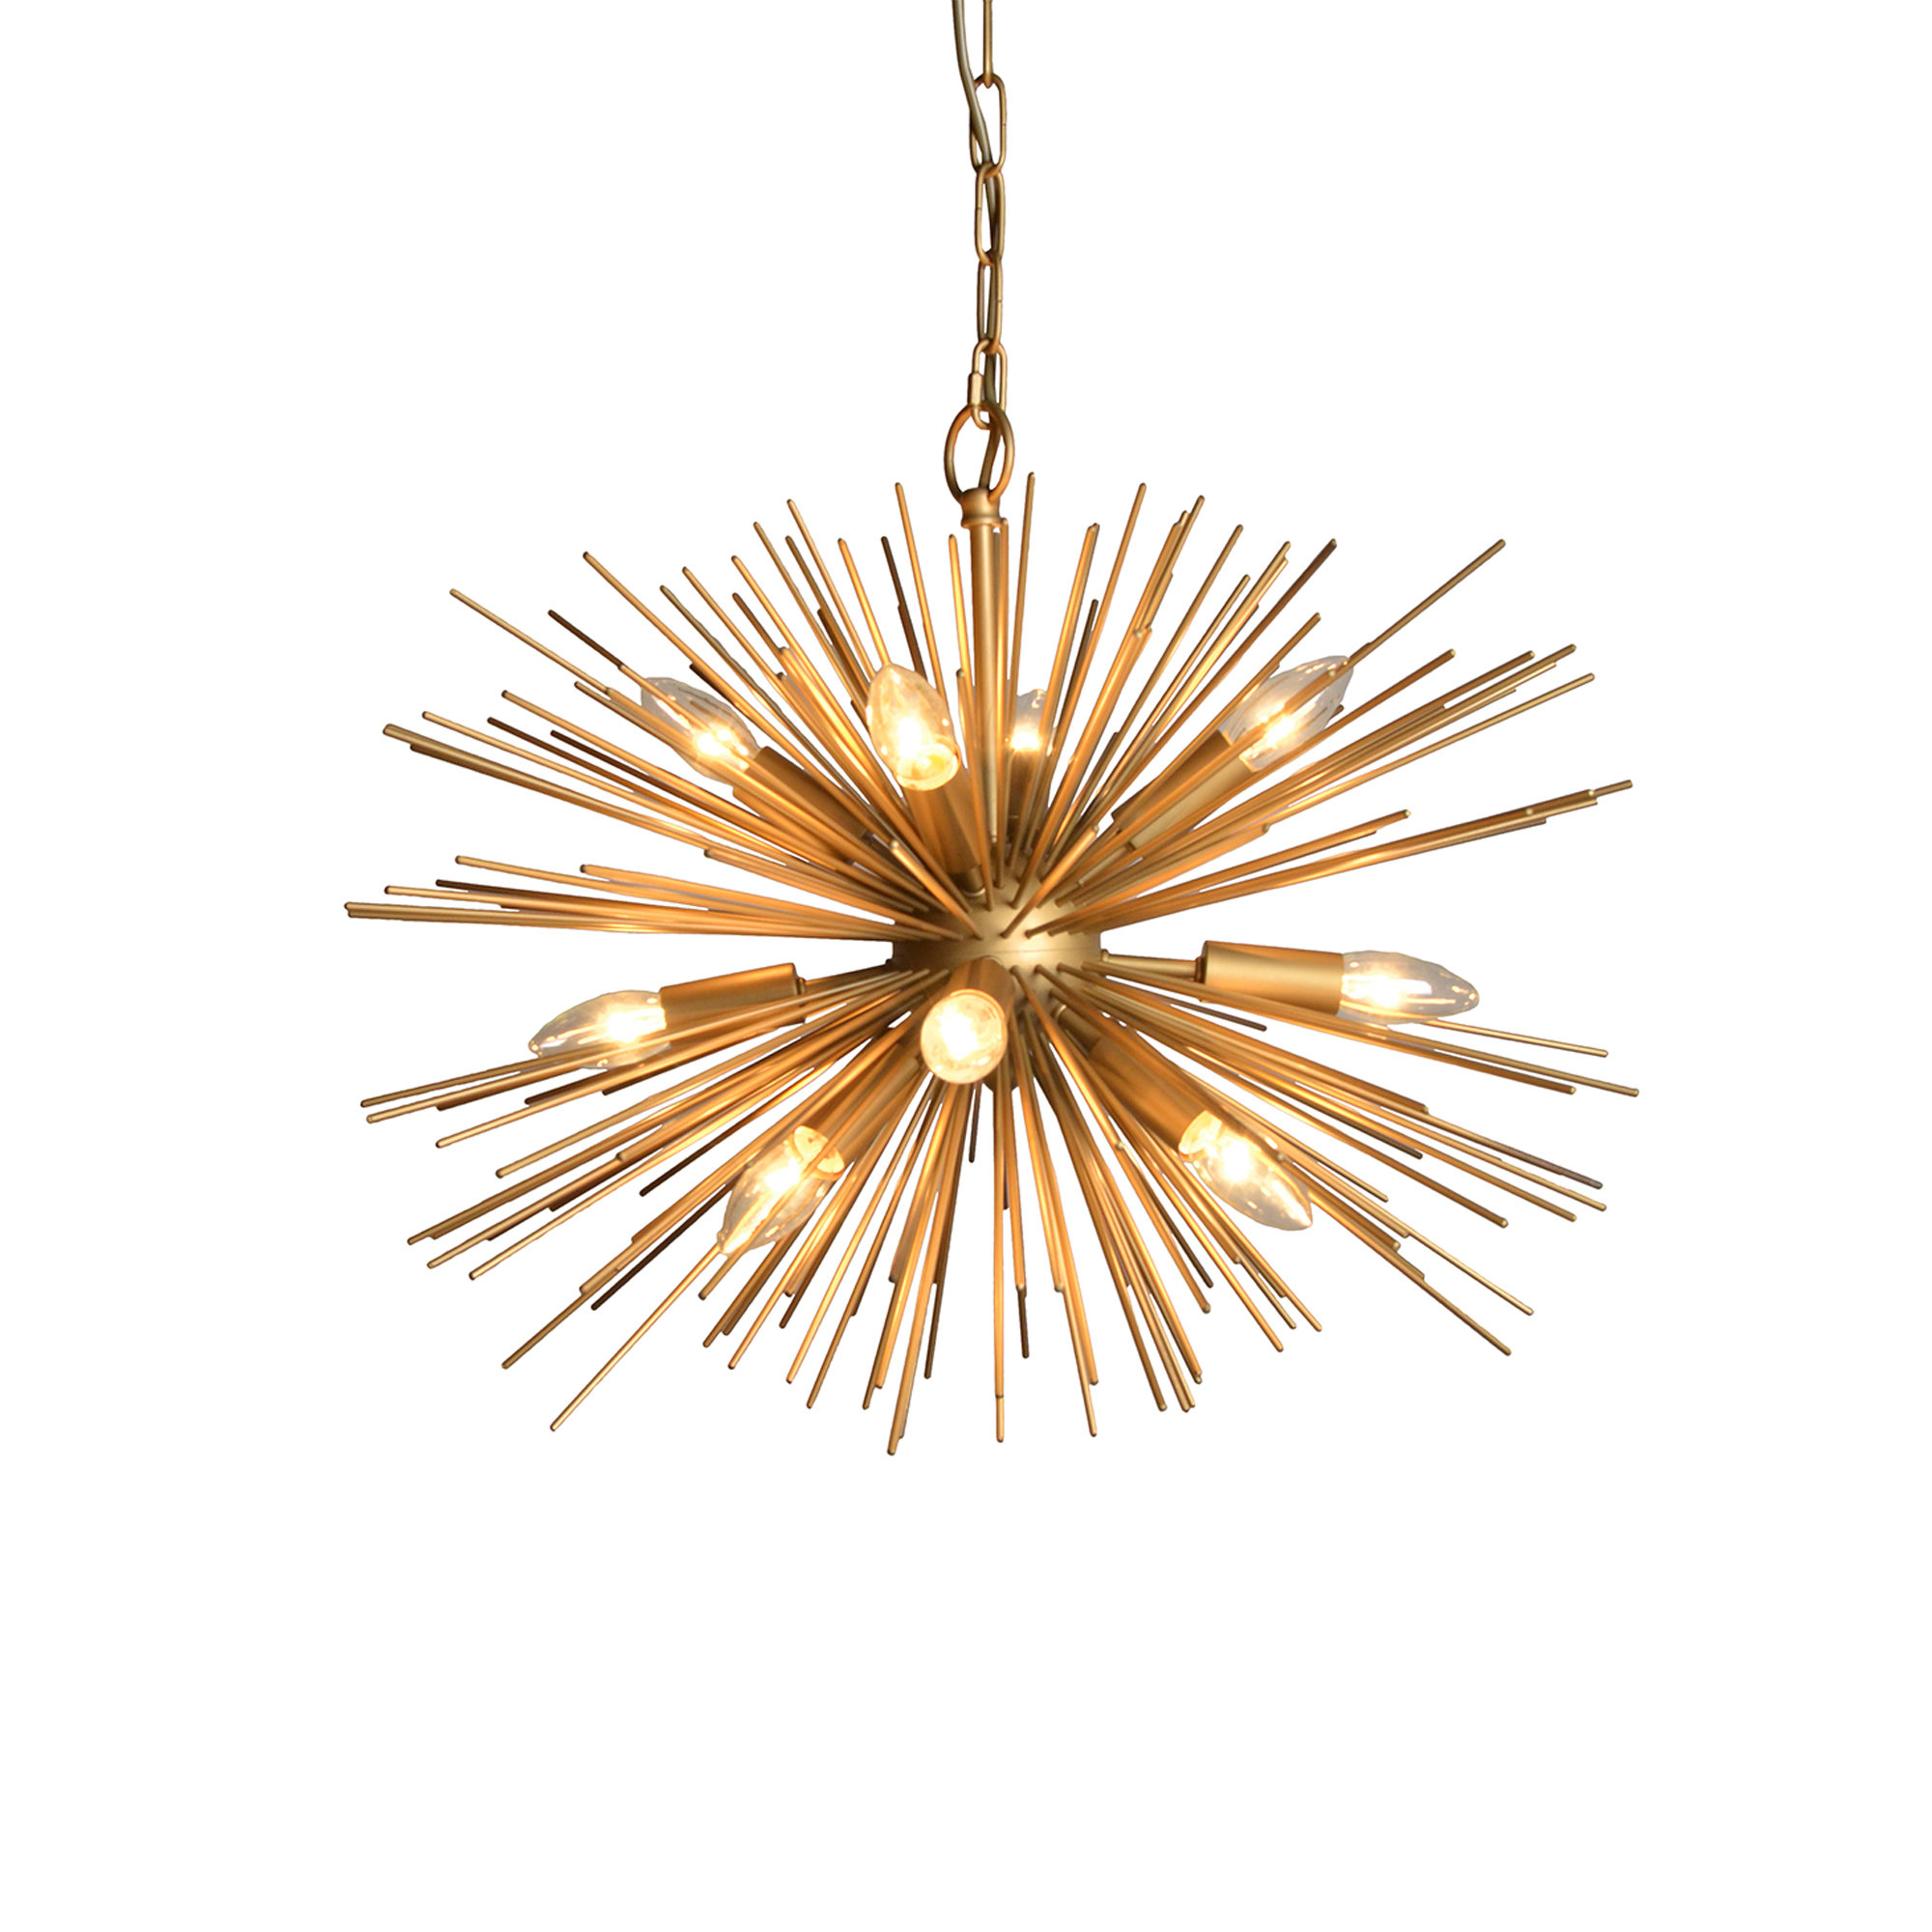 Recent Nelly 12 Light Sputnik Chandeliers For Modern Rustic Interiors Nelly 12 Light Sputnik Chandelier (Gallery 4 of 20)